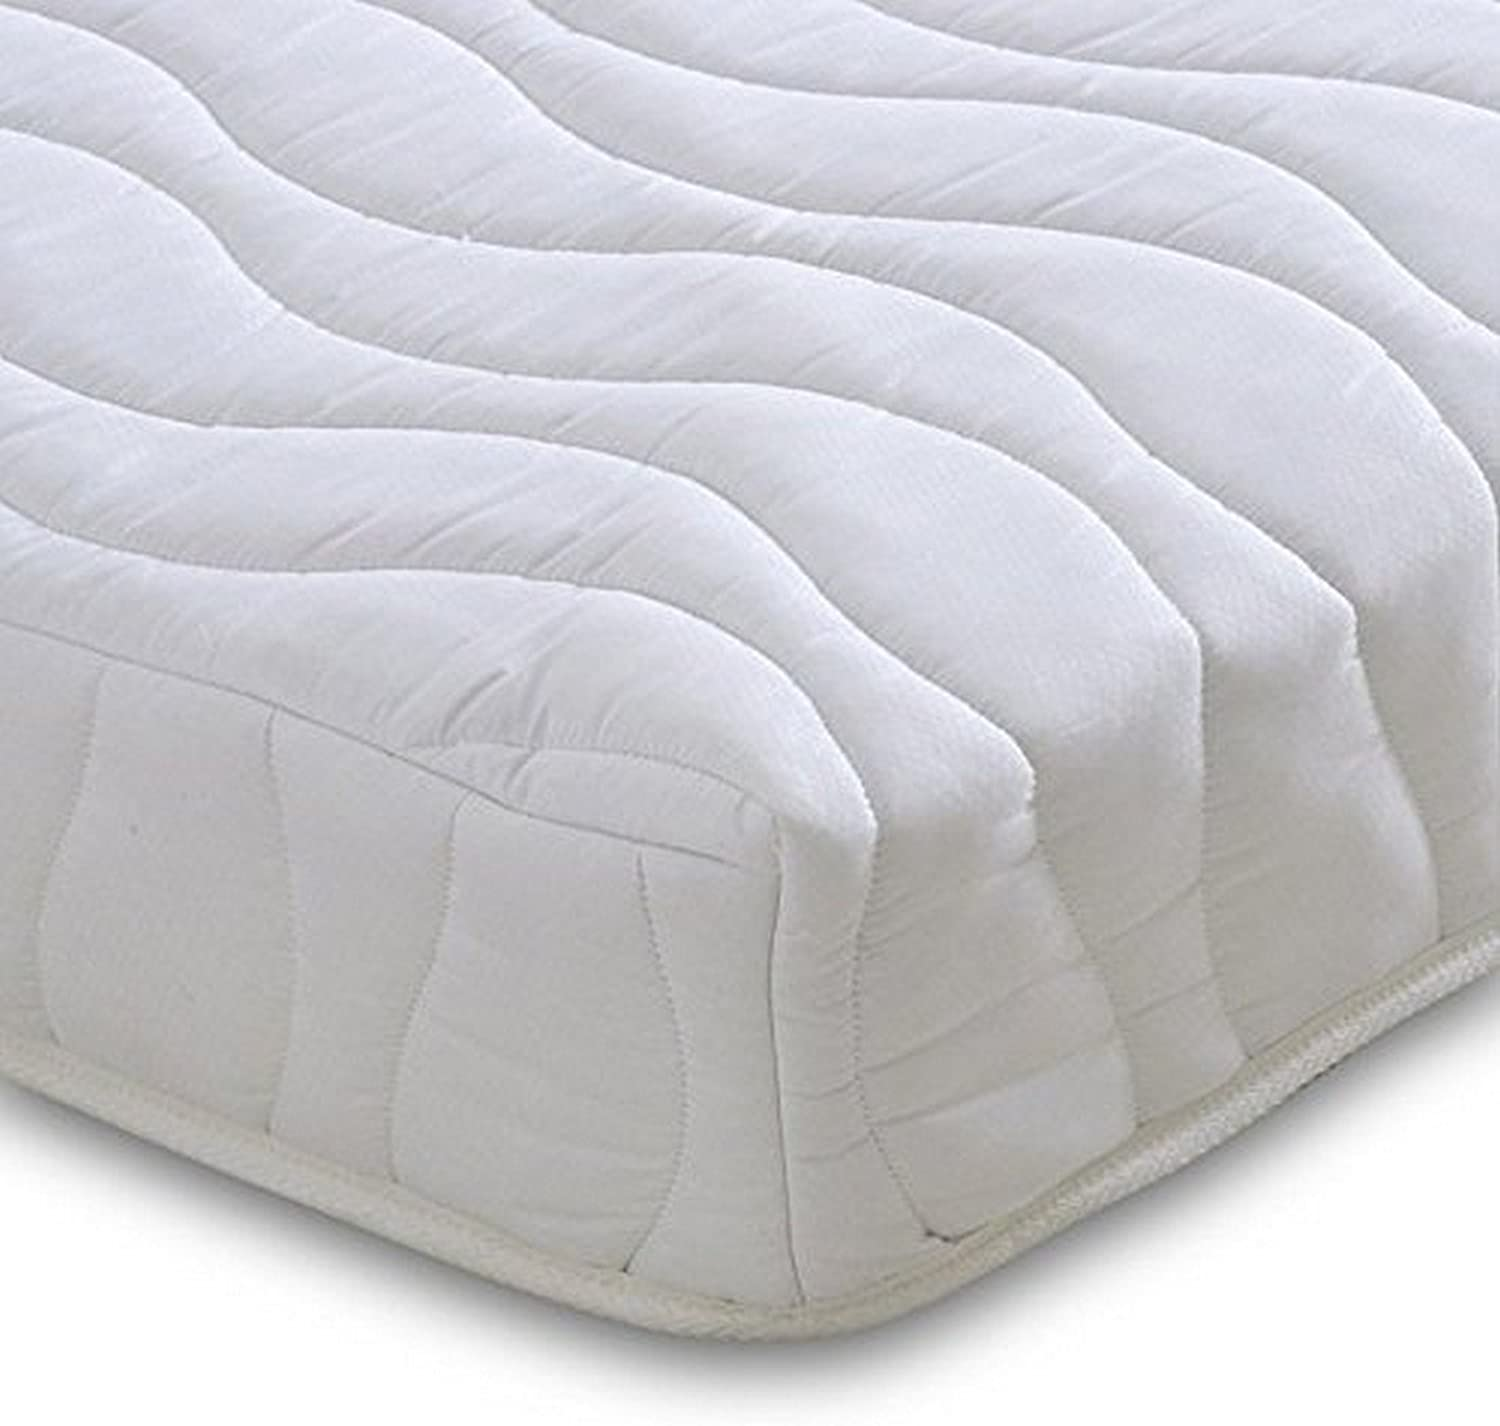 Visco Therapy Little Champ Pocket Spring Rolled Mattress - Single